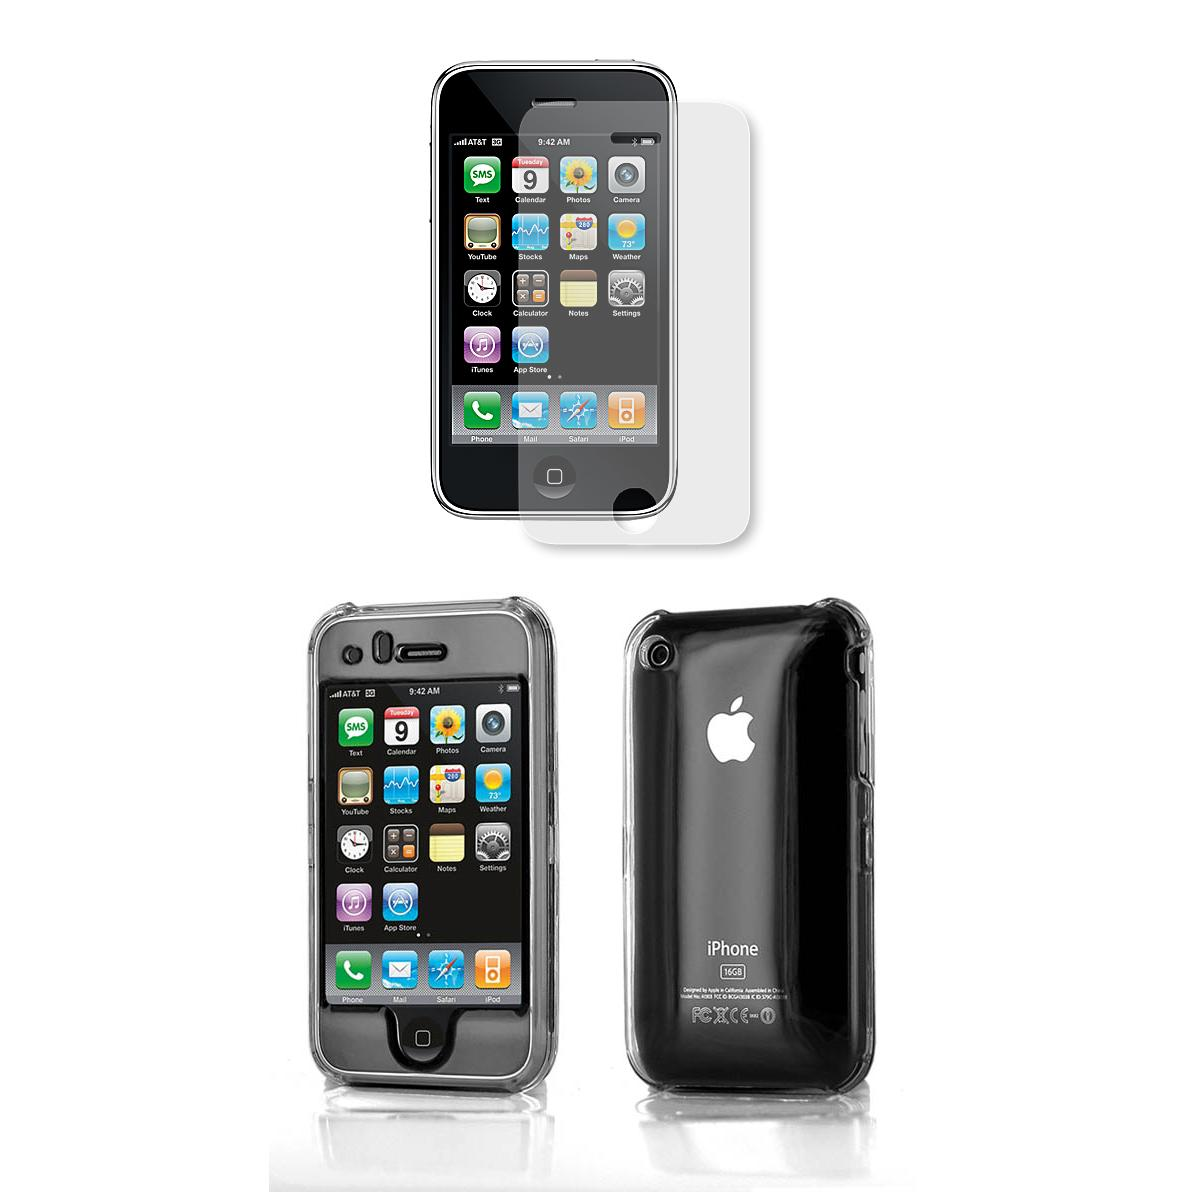 iphone 3rd generation apple iphone 3rd generation protector with screen 10830